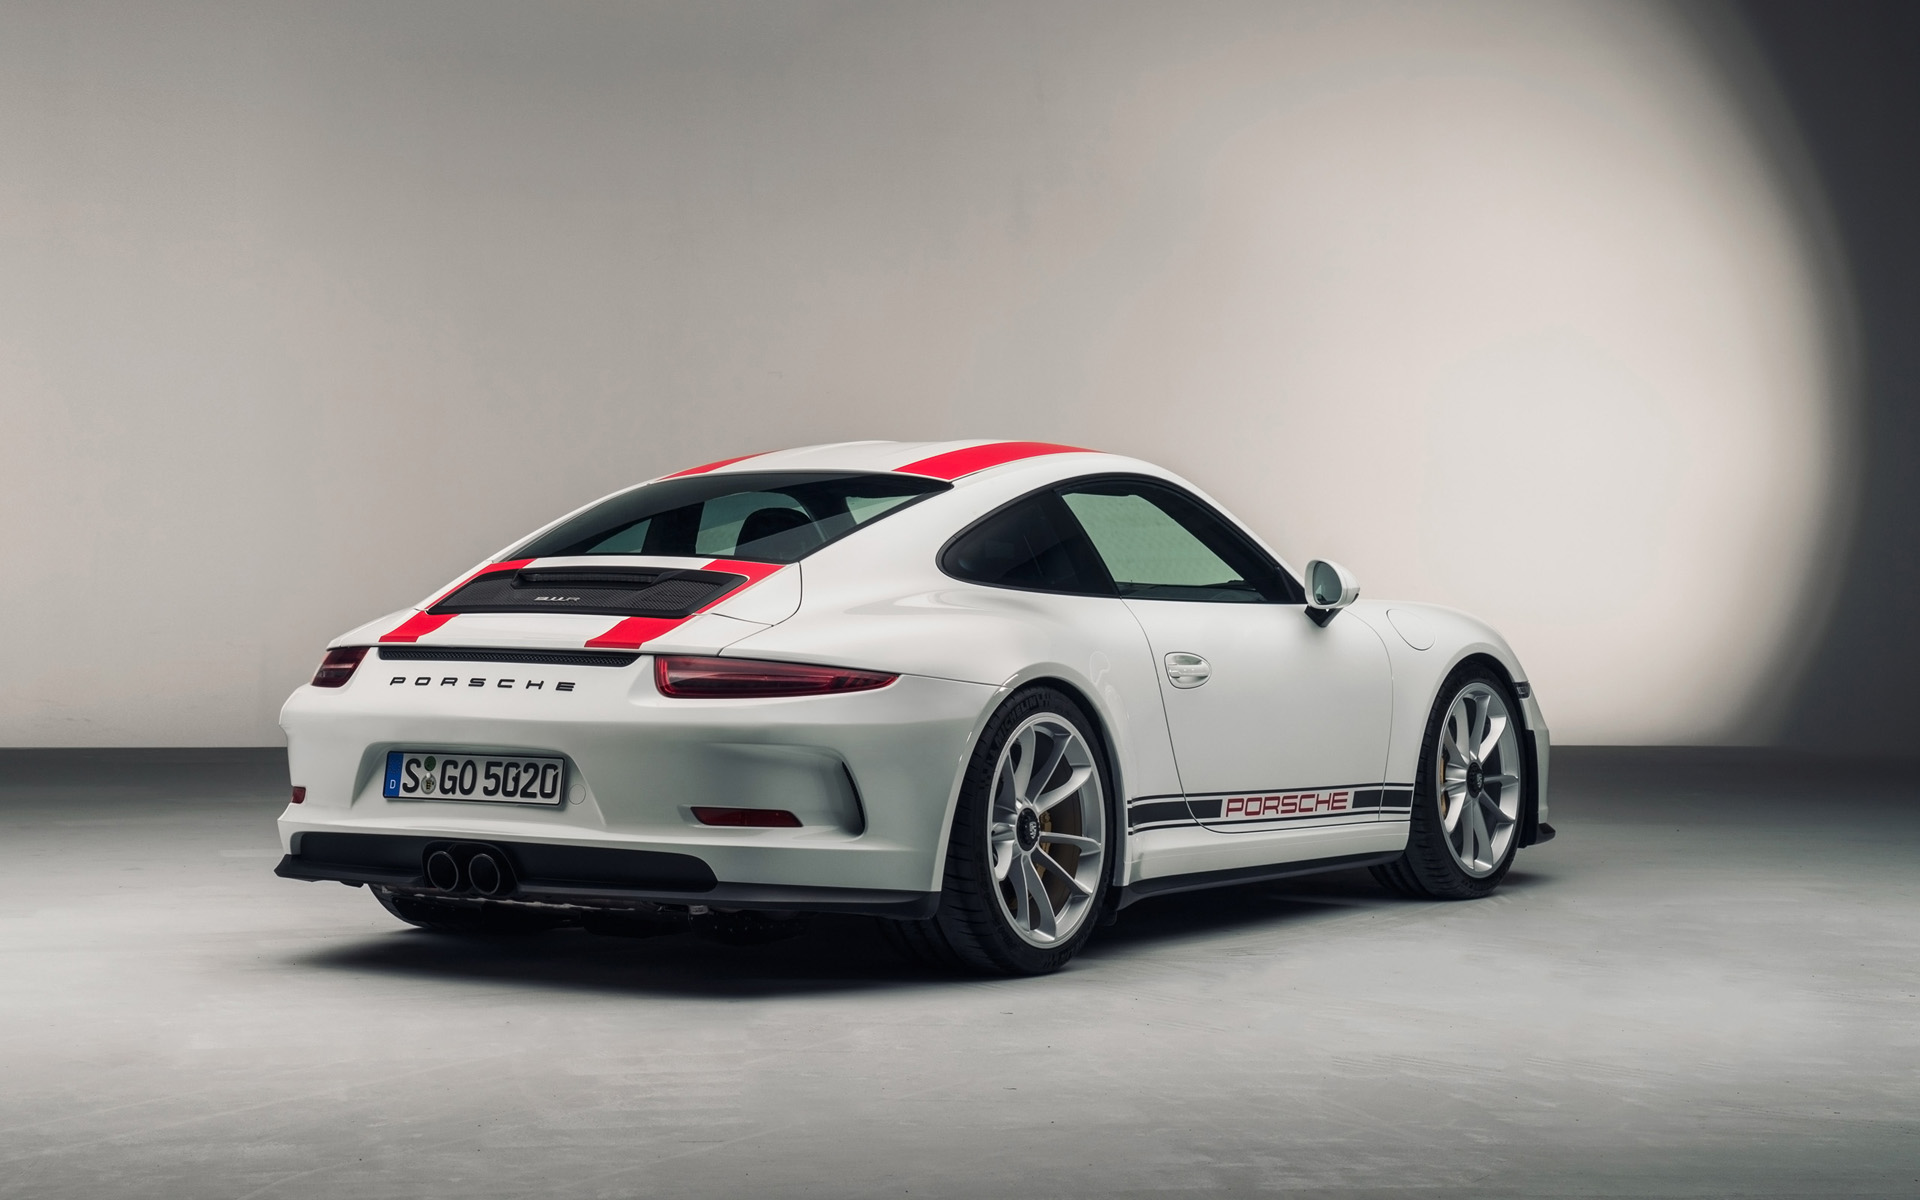 2016 Porsche 911 R   Studio   1   1920x1200   Wallpaper 1920x1200